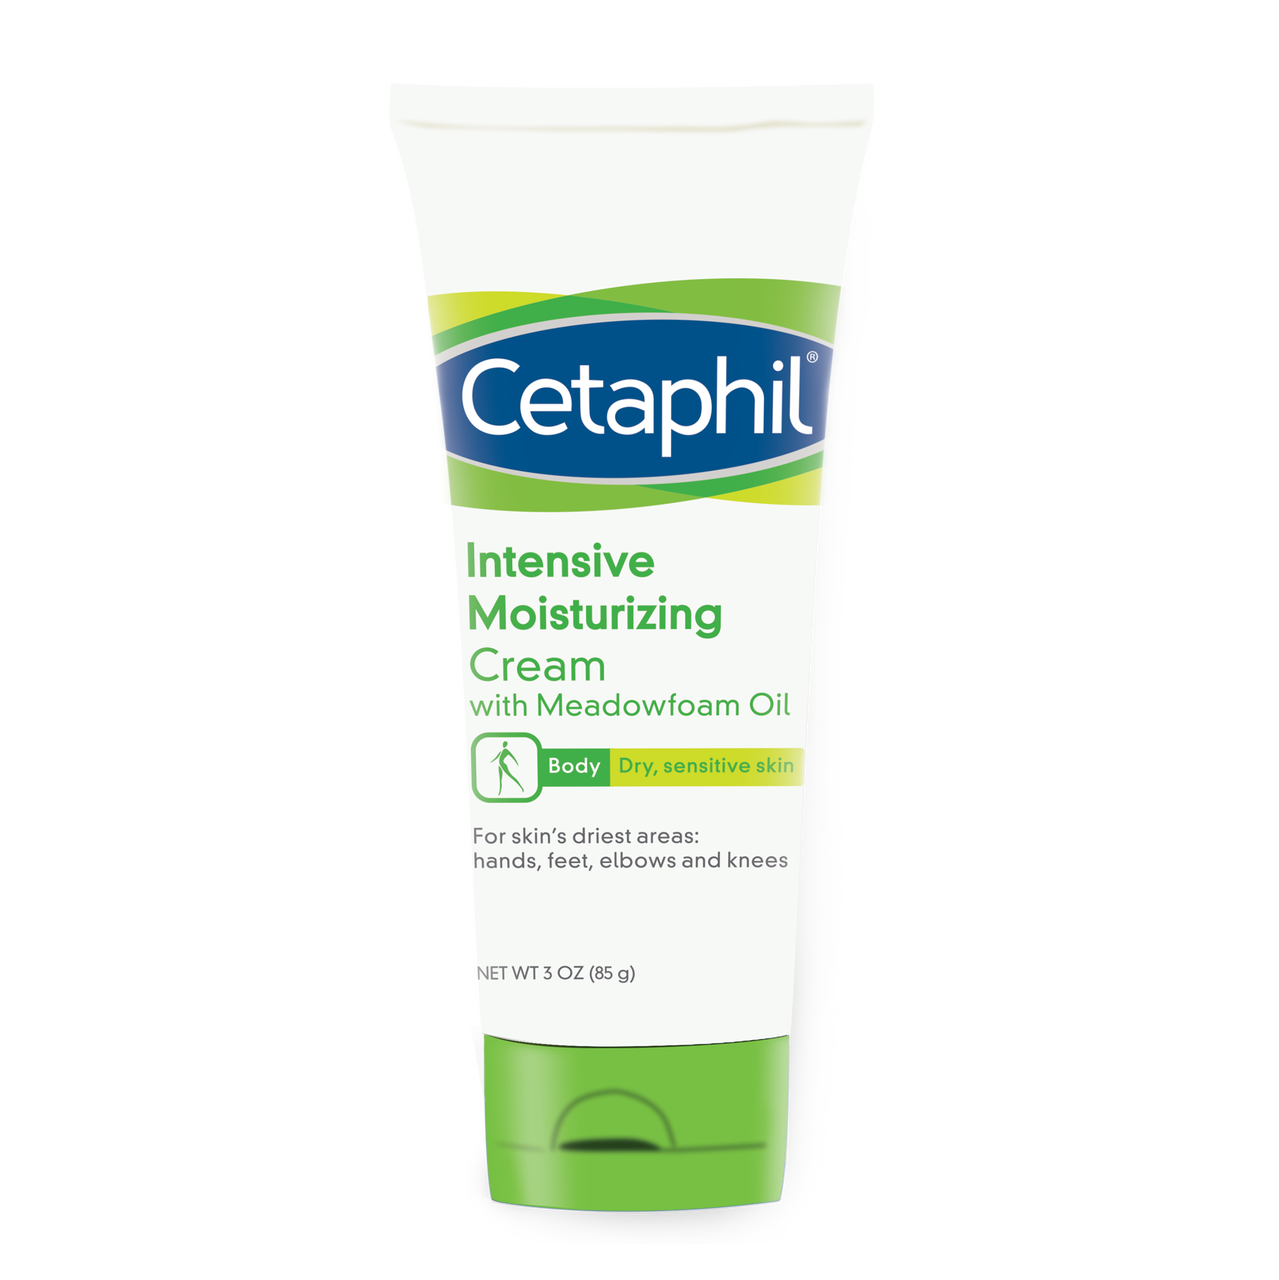 Hydrating Moisturizer Cream Intensive Moisturizing Cetaphil Undefined